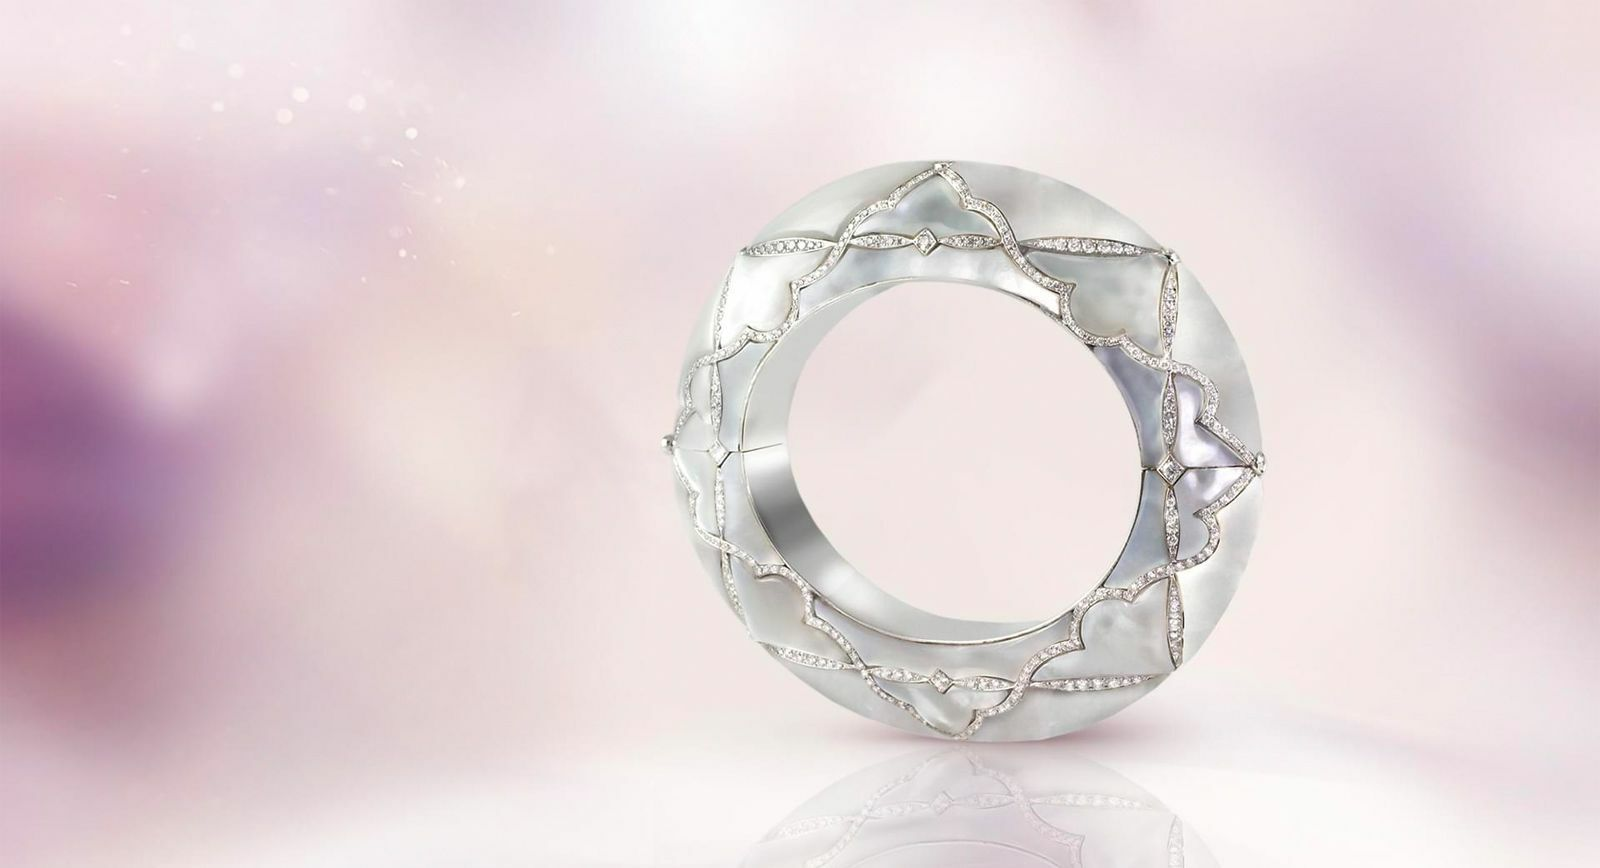 Boghossian cuff bracelet with mother-of-pearl and diamonds